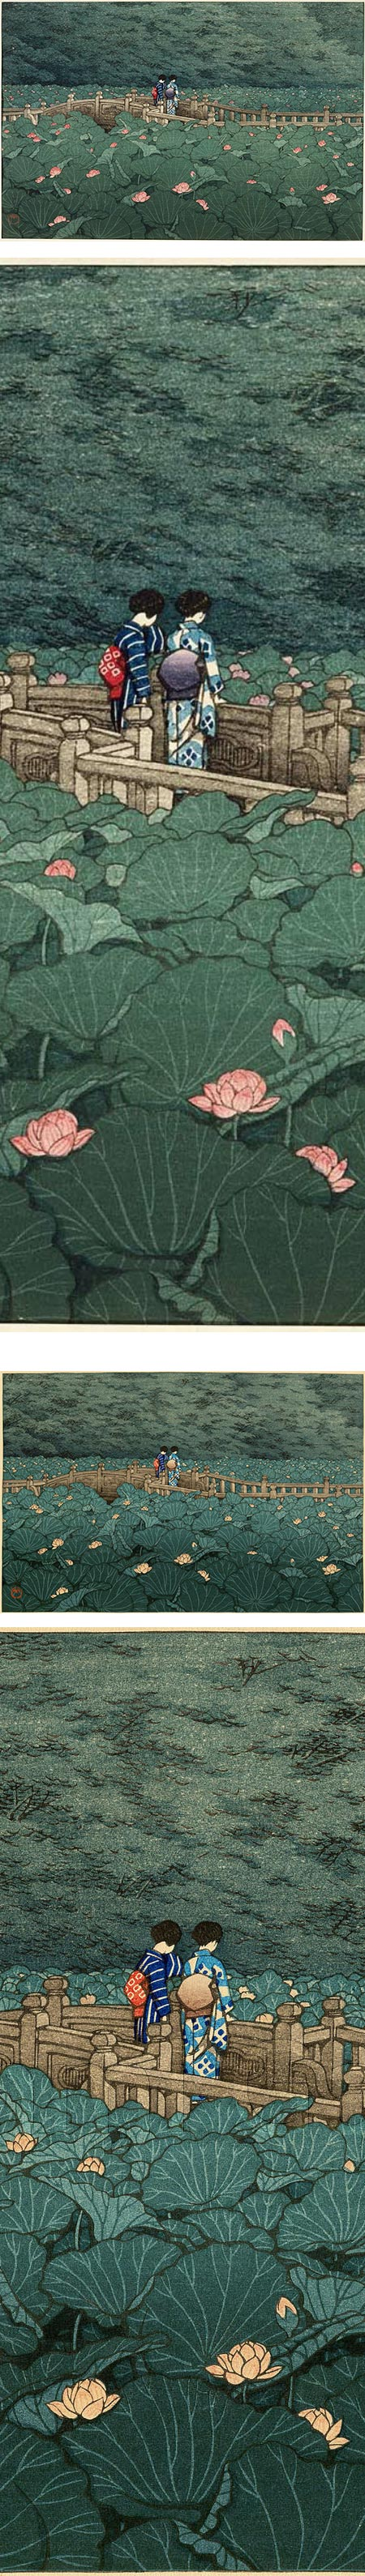 The Pond at Benten Shrine in Shiba (Shiba Benten ike), Kawase Hasui